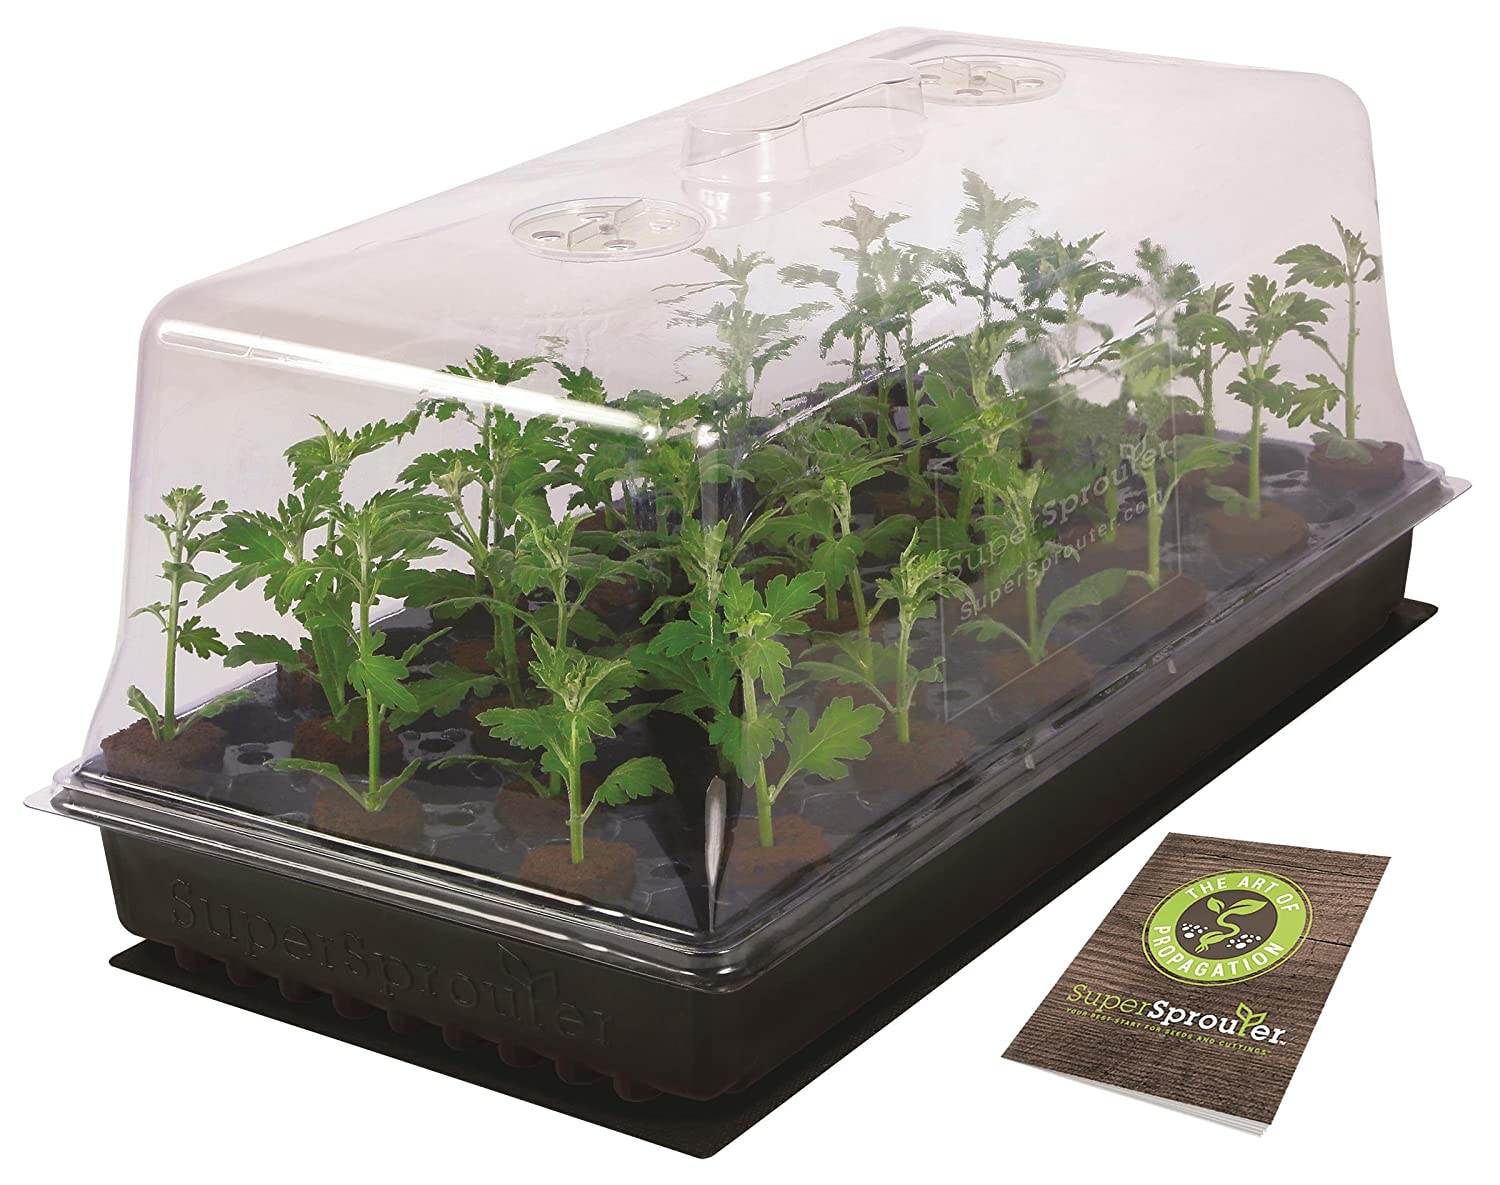 Super Sprouter Deluxe Propagation Kit w/ 7' Dome & T5 Light Sunlight Supply Inc. 726403